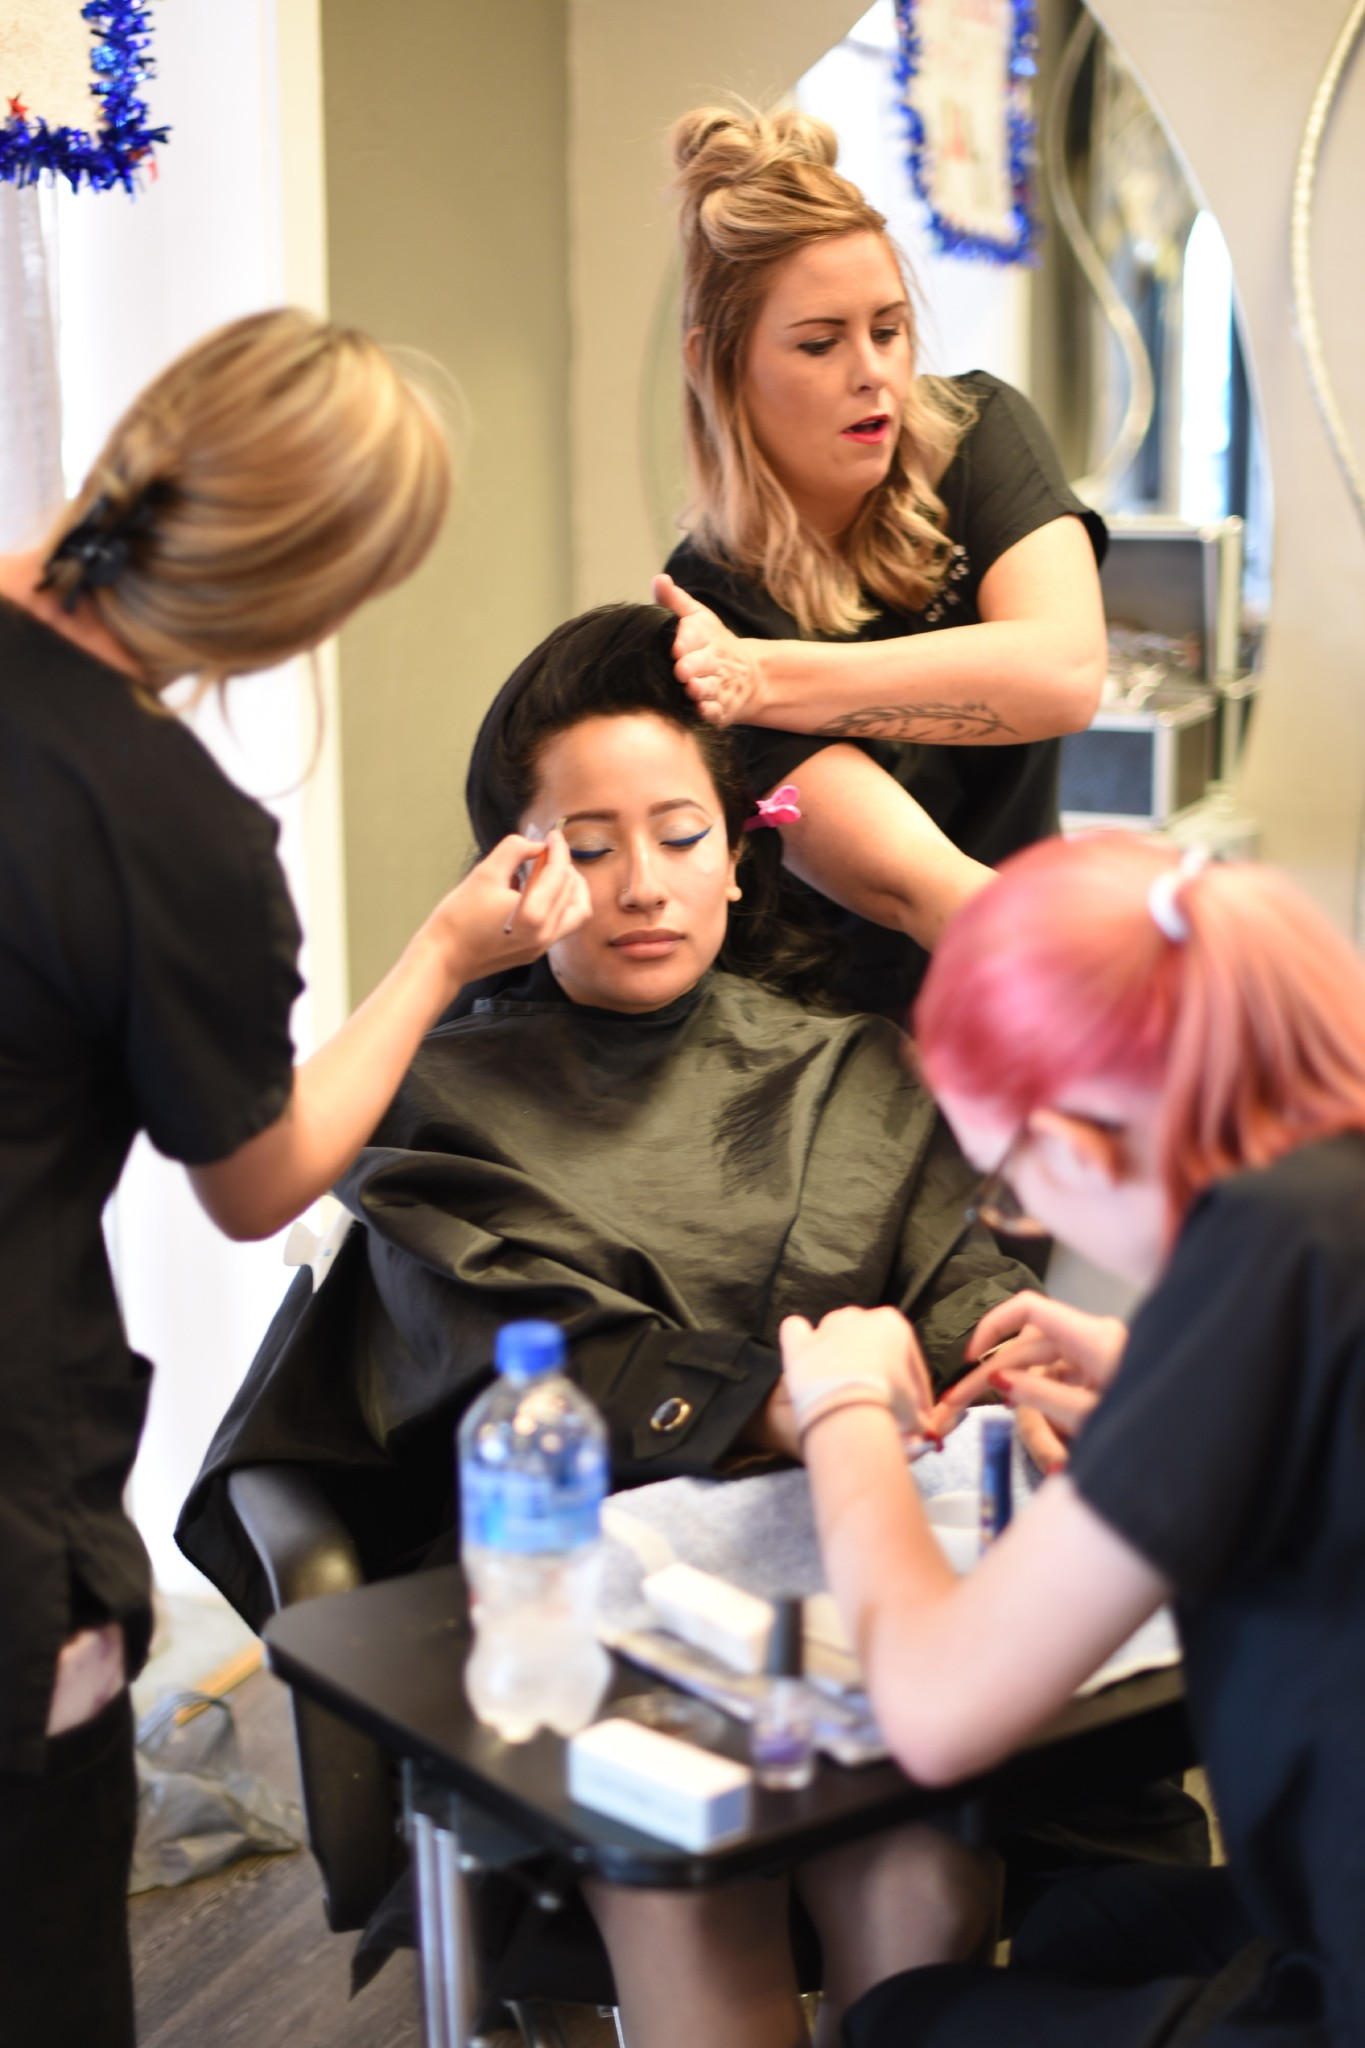 Three women cooperating to put makeup on their customer